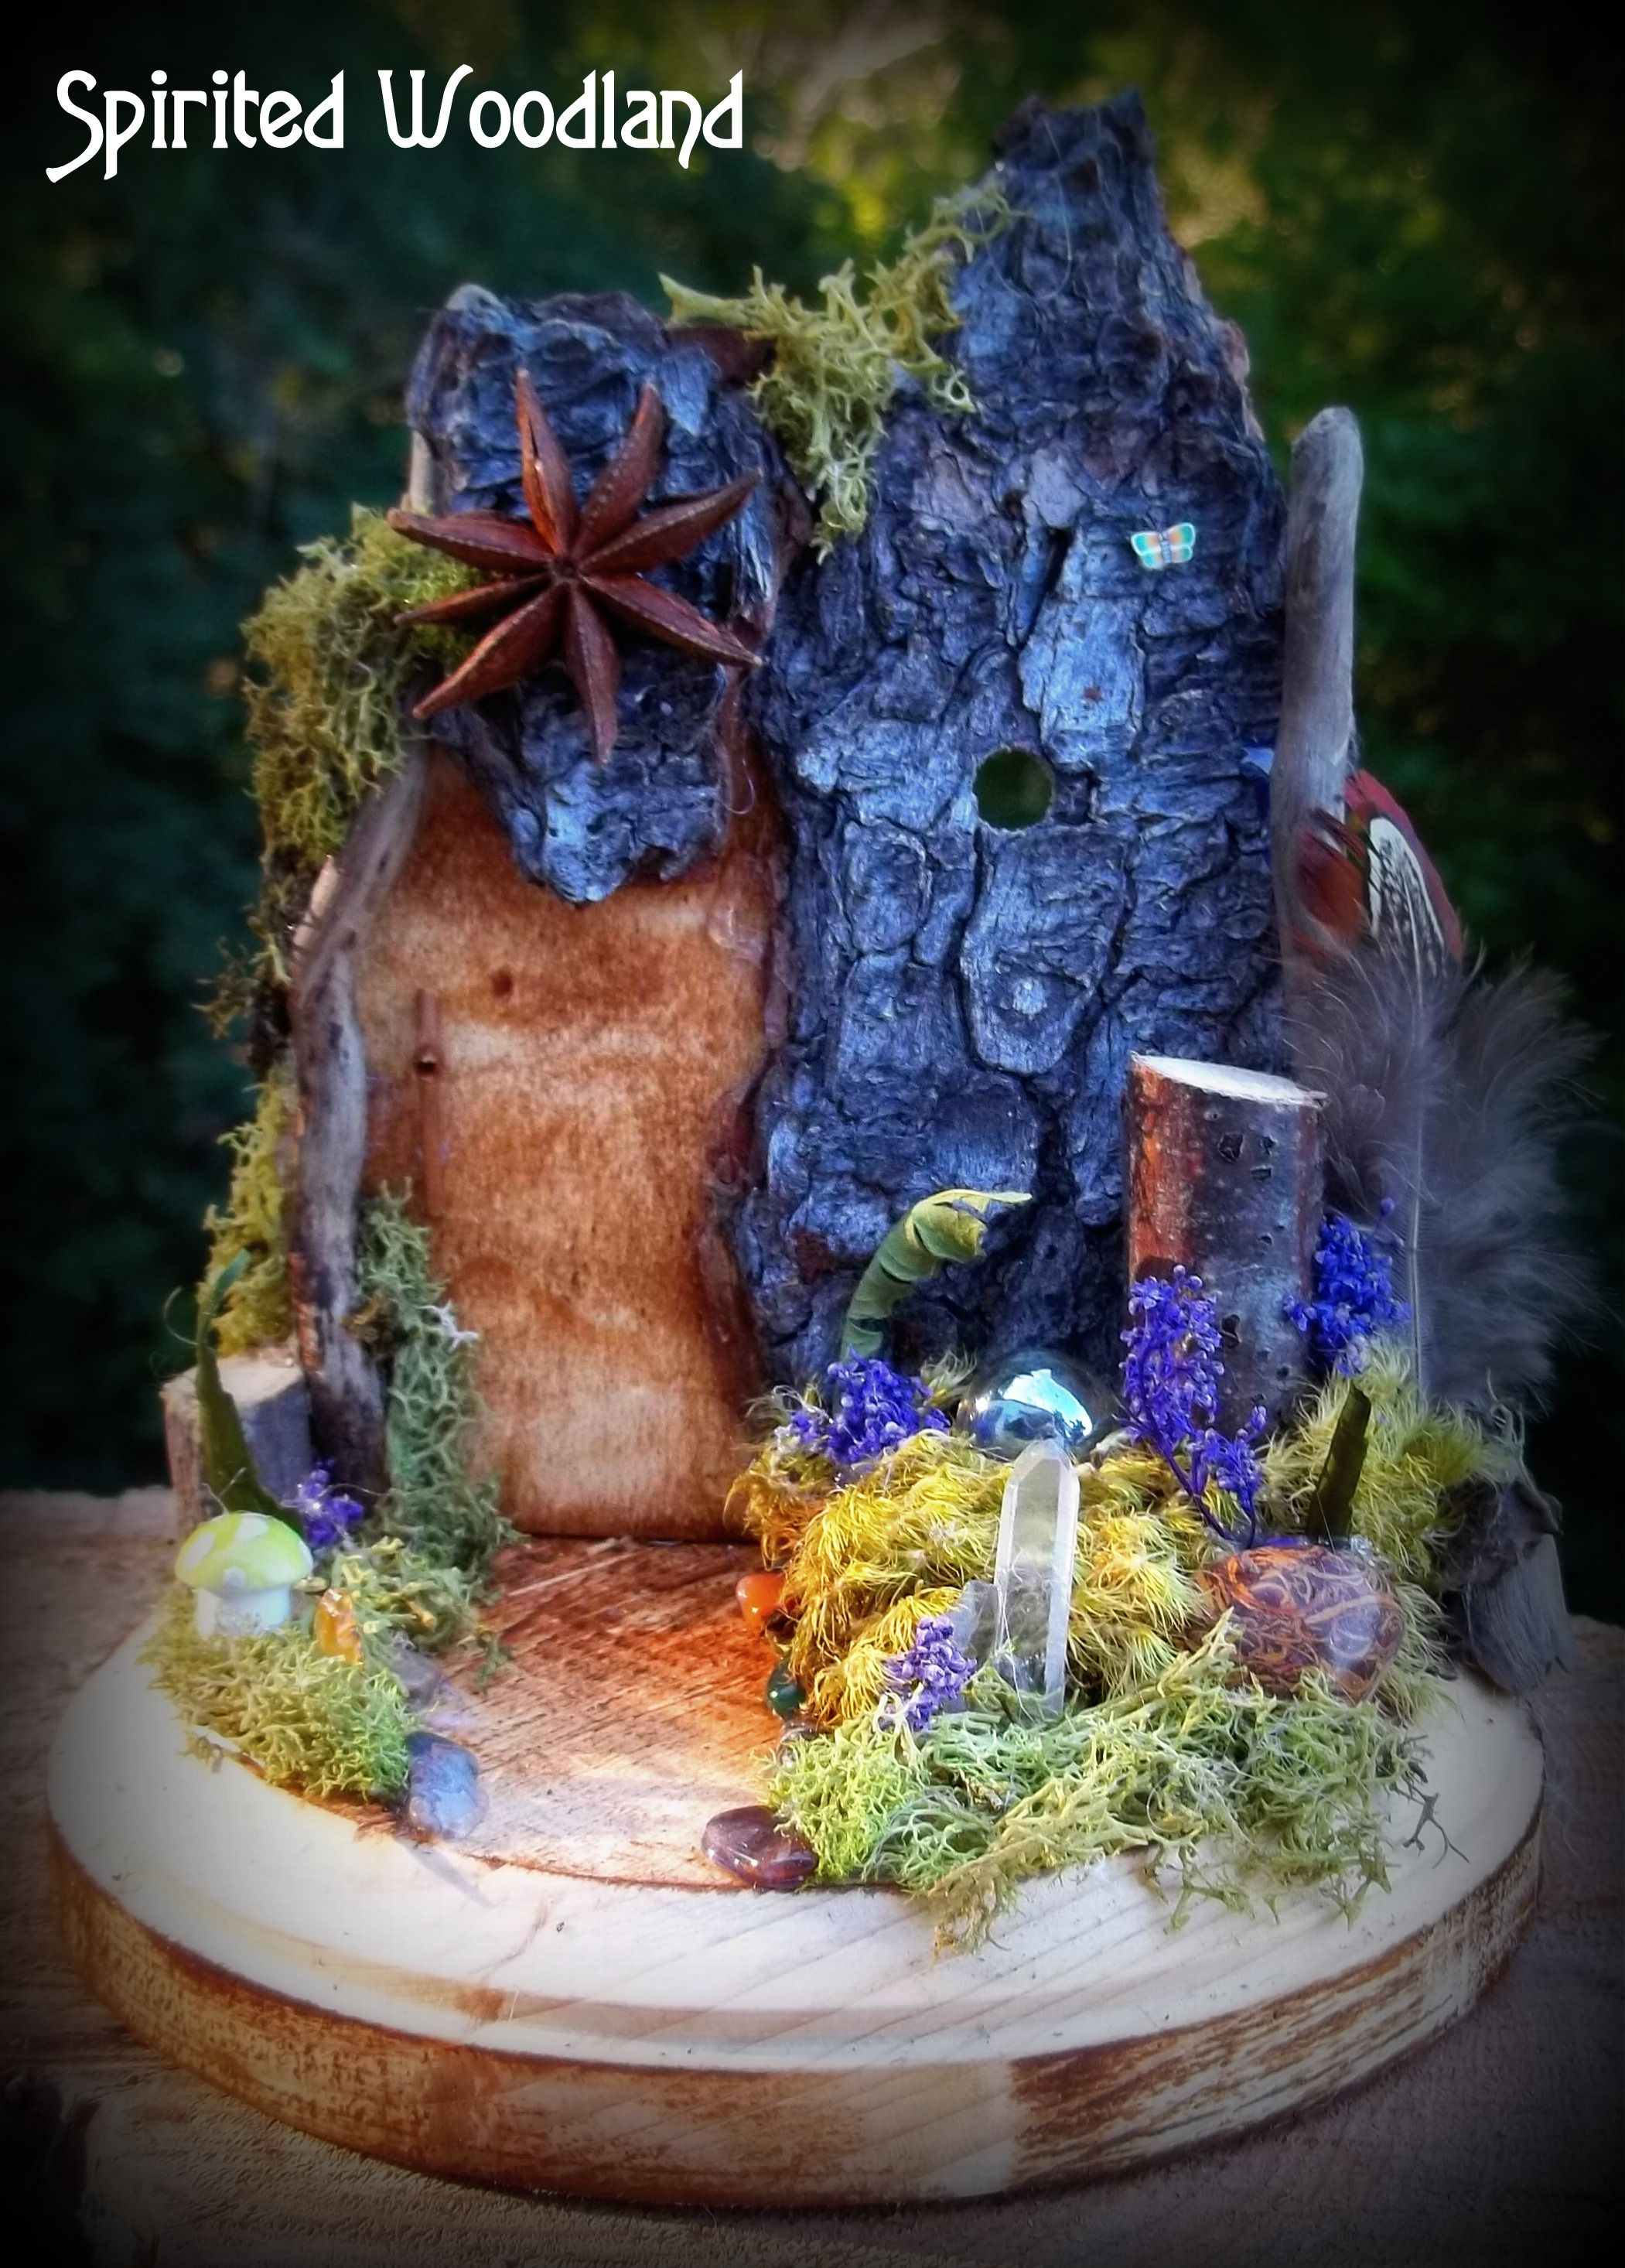 A magical fairy door awaits decorated with quartz crystals, soft mosses and an anise star.  Created by me, Roxie J. Zwicker ~ Spirited Woodland.